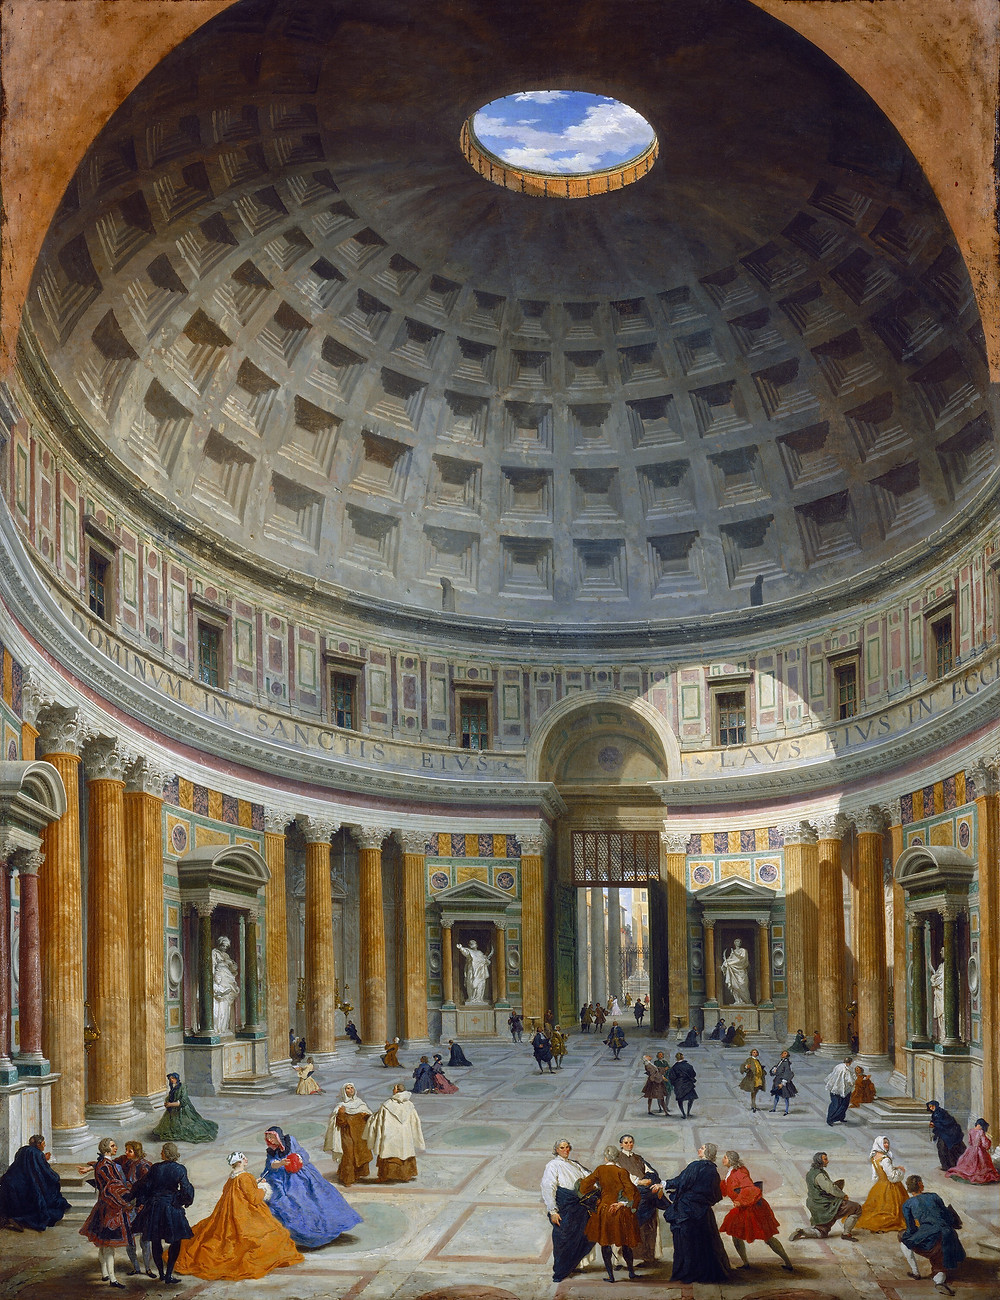 1734 painting of the Pantheon by Giovanni Paolo Panini